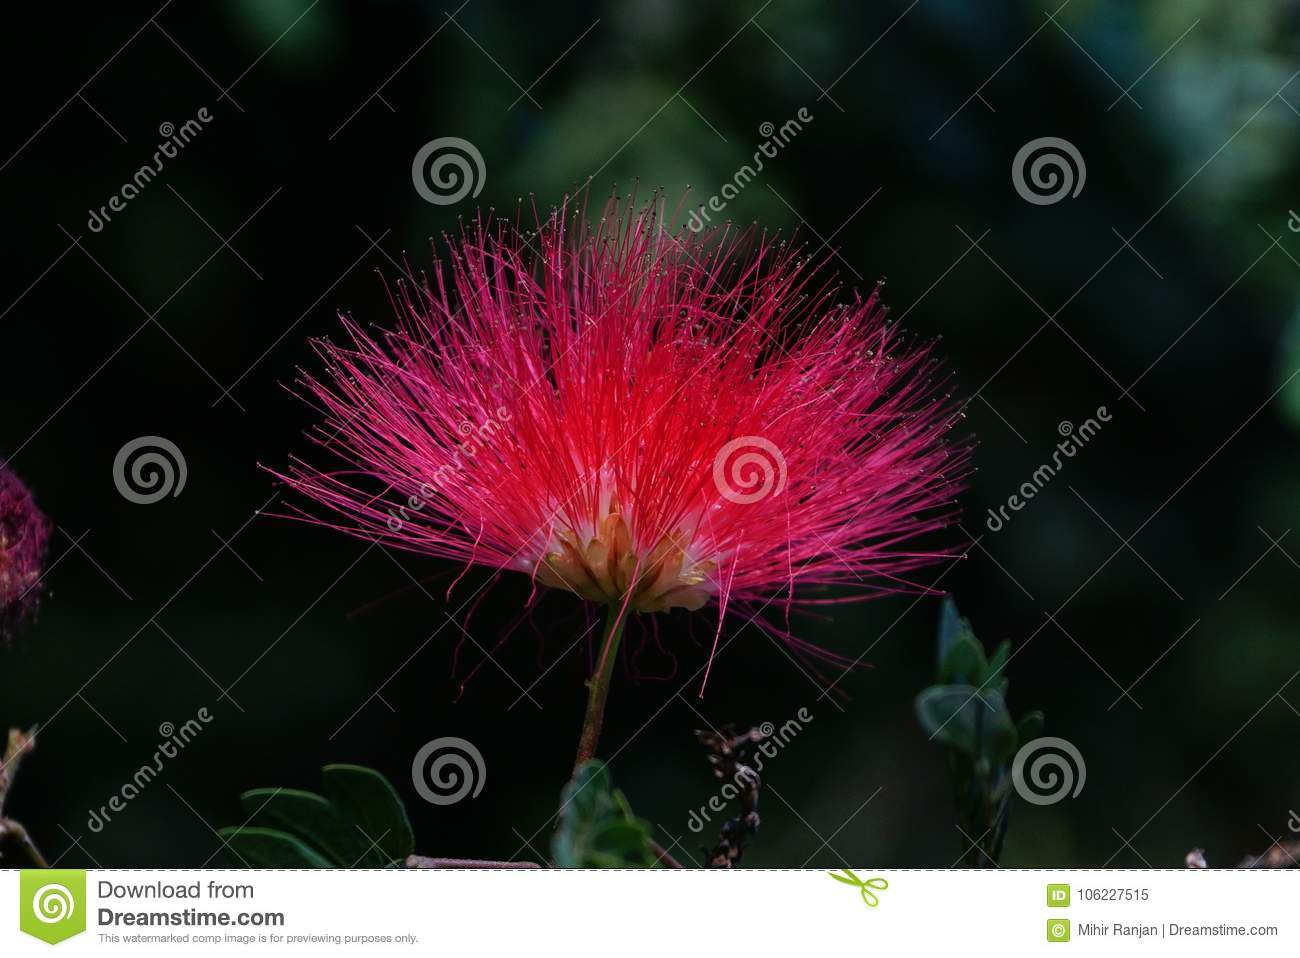 A close-up of Persian silk tree flower